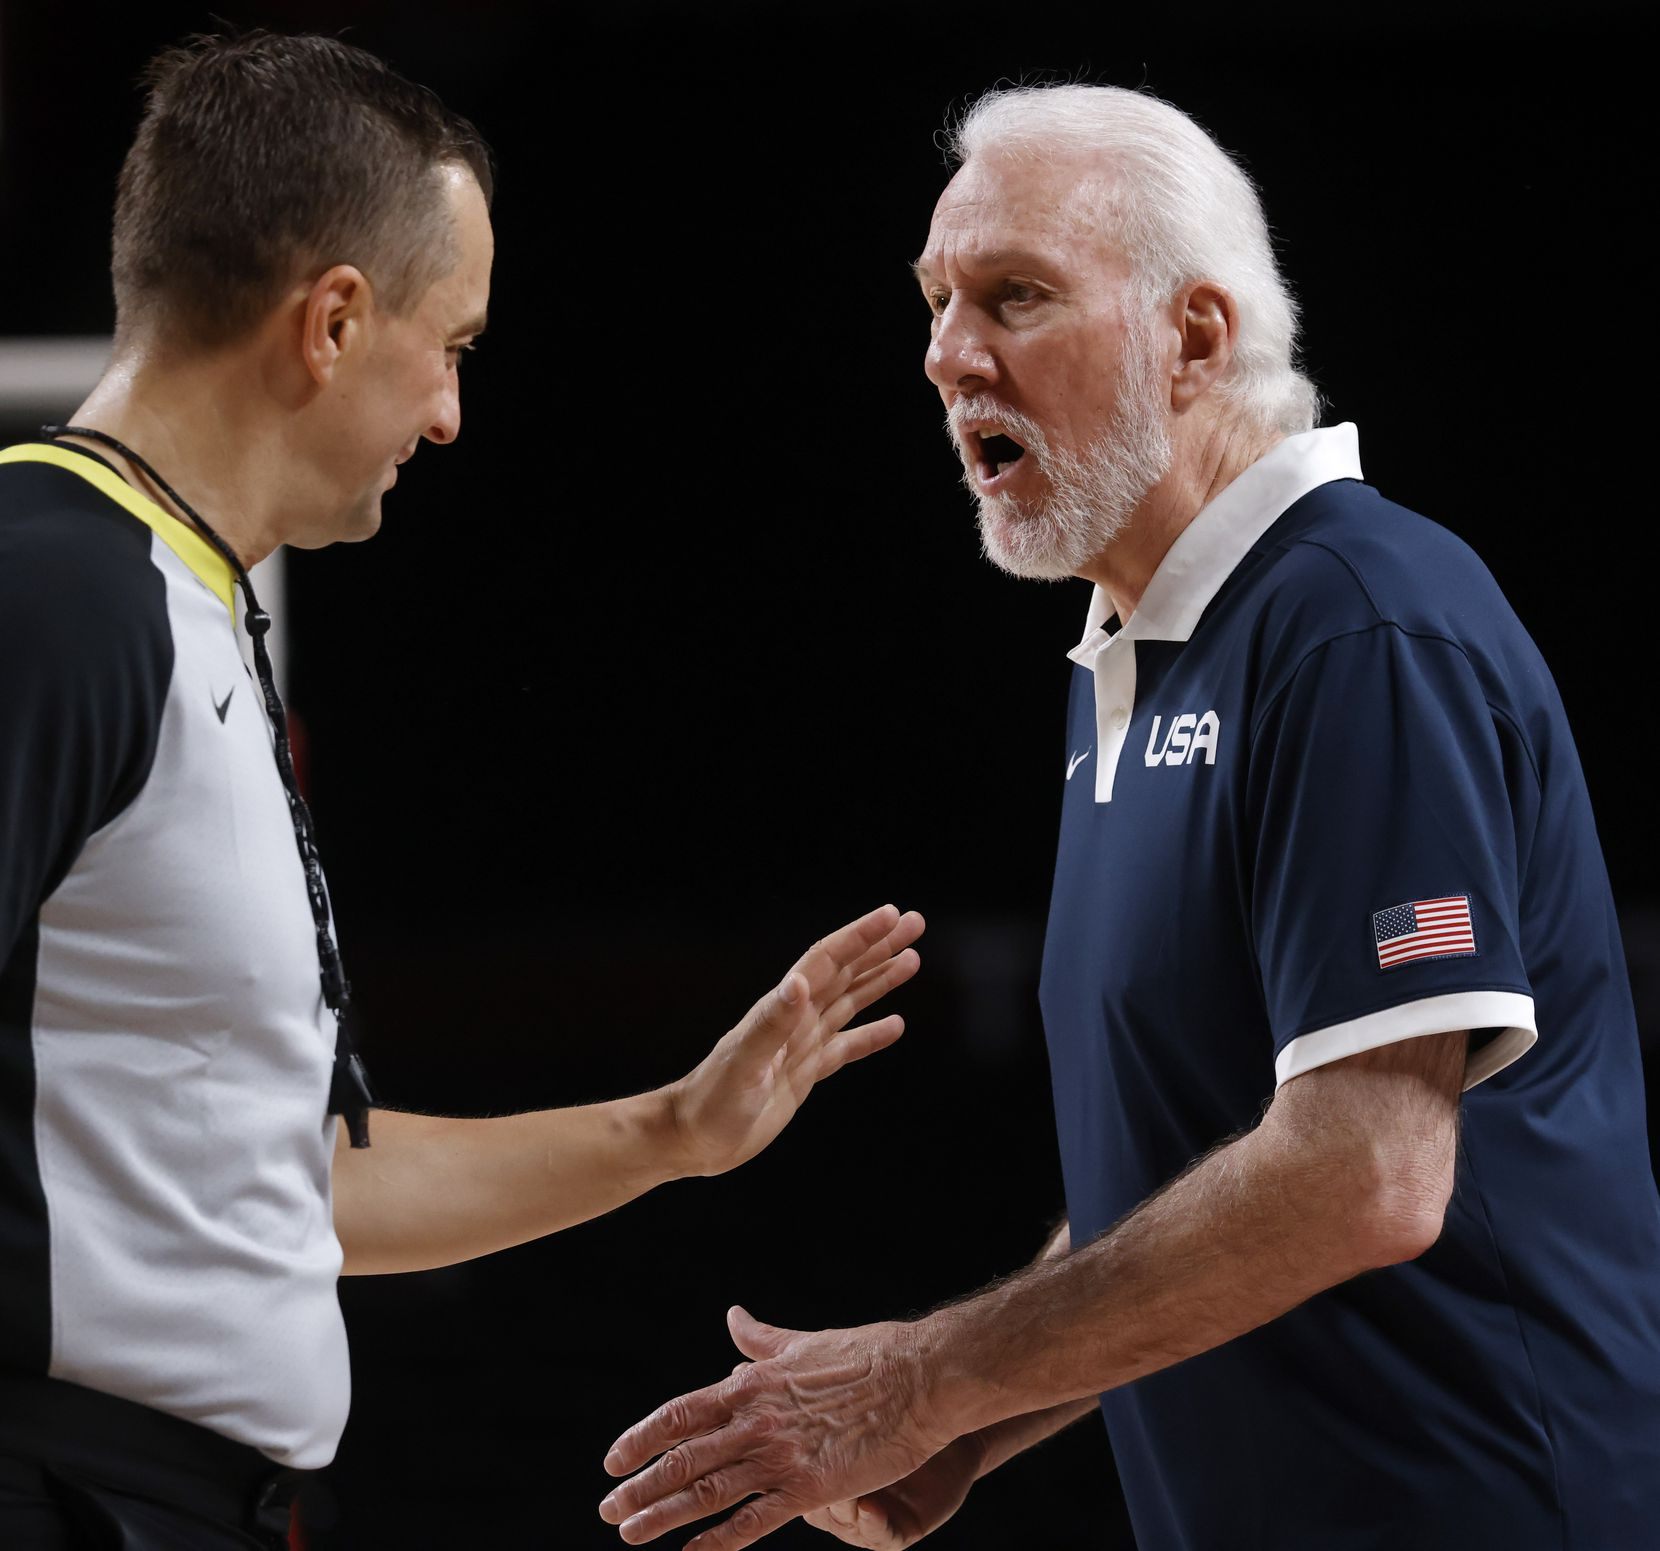 USA's head coach Gregg Popovich talks to a referee about a call in a game against Australia during the first half of a men's basketball semifinal at the postponed 2020 Tokyo Olympics at Saitama Super Arena, on Thursday, August 5, 2021, in Saitama, Japan. USA defeated Australia 97-78 to advance to the gold medal game. (Vernon Bryant/The Dallas Morning News)